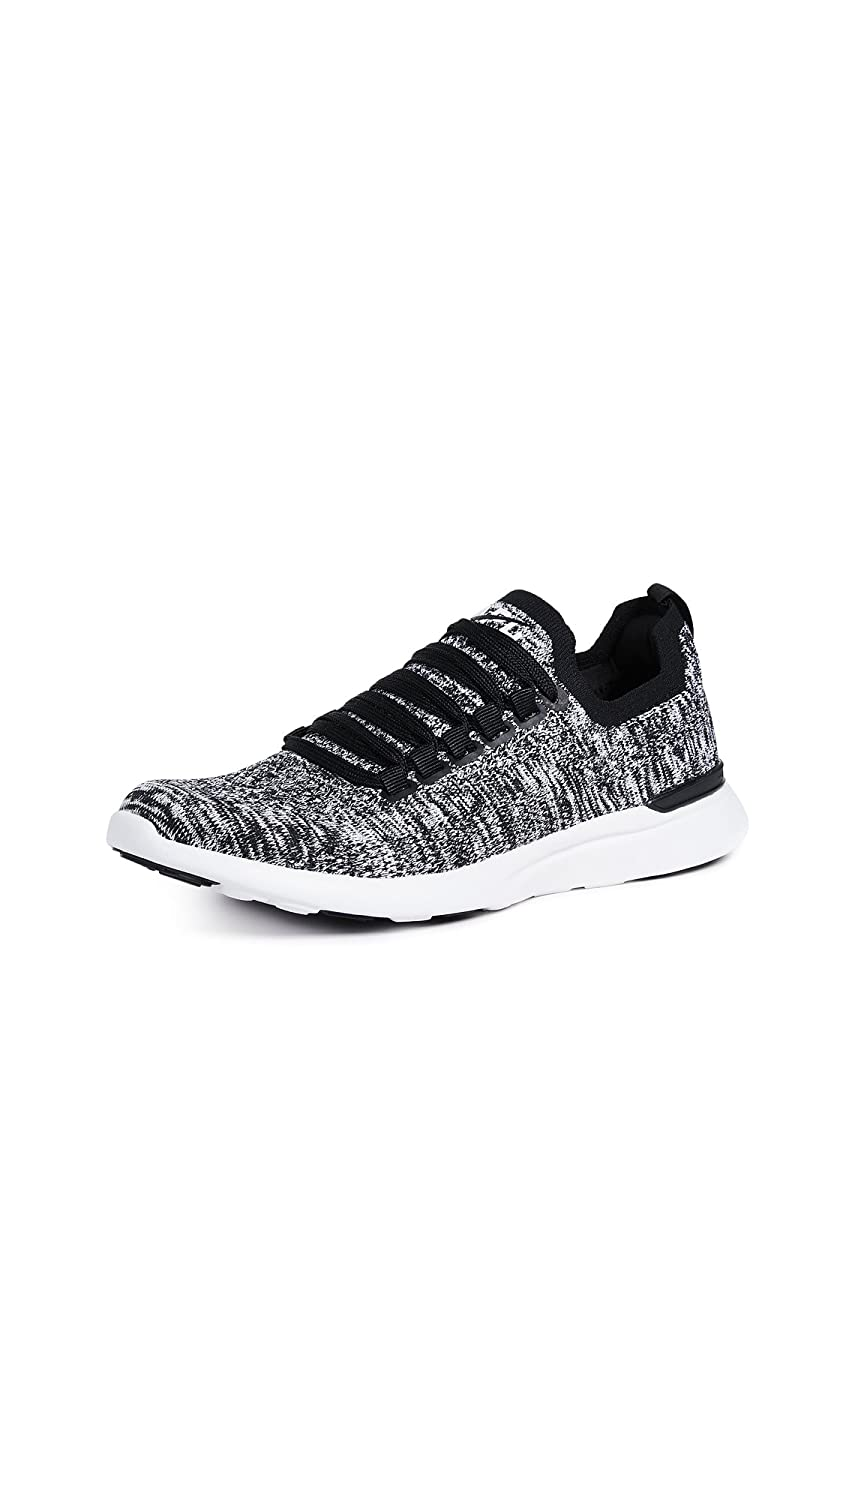 APL: Athletic Propulsion Labs Women's Techloom Breeze Sneakers B07BH41XF6 6.5 B(M) US|Black/White/Melange